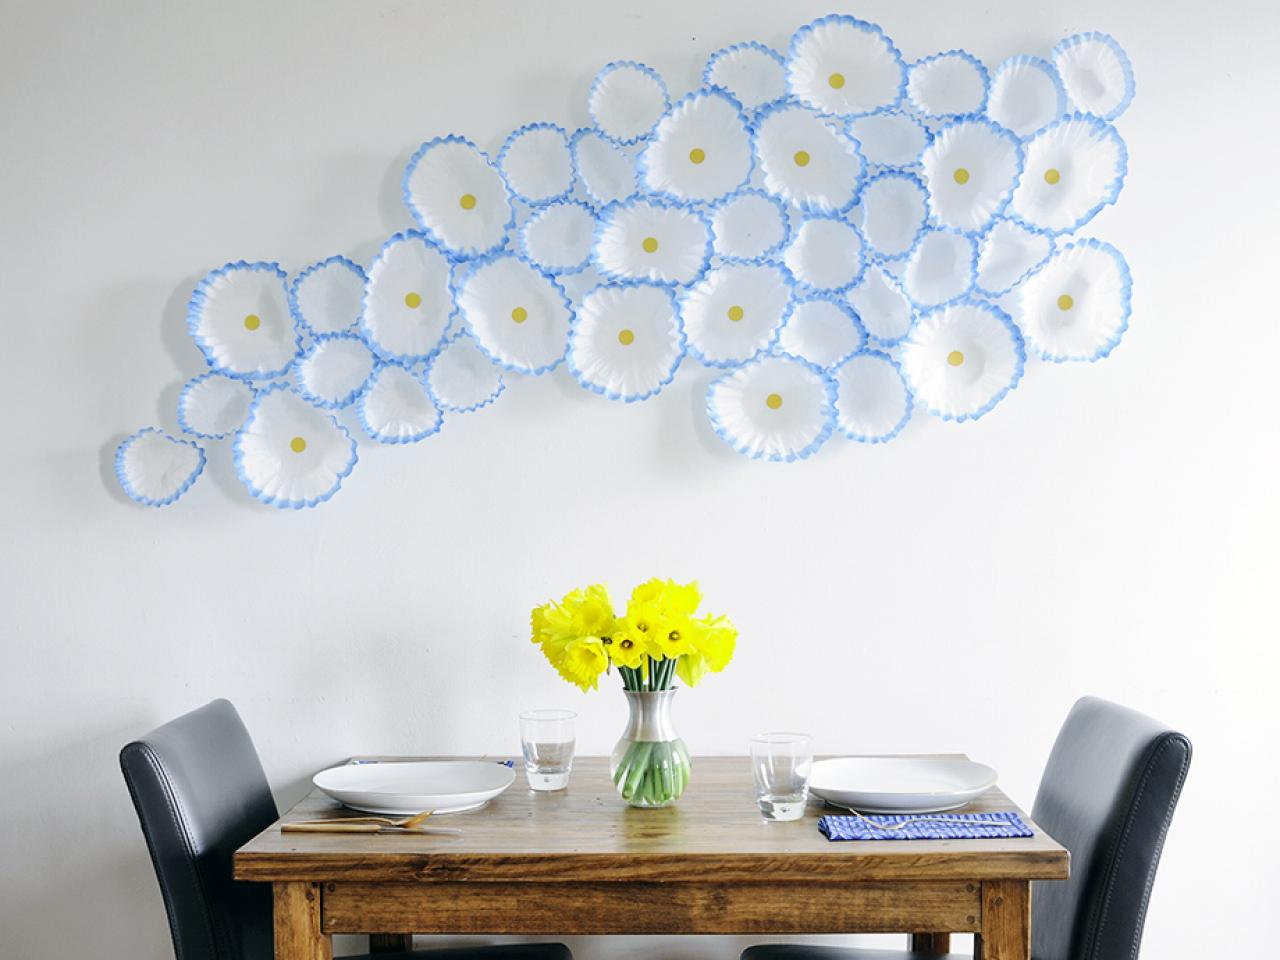 How to Make Floral Wall Art With Coffee Filters | HGTV